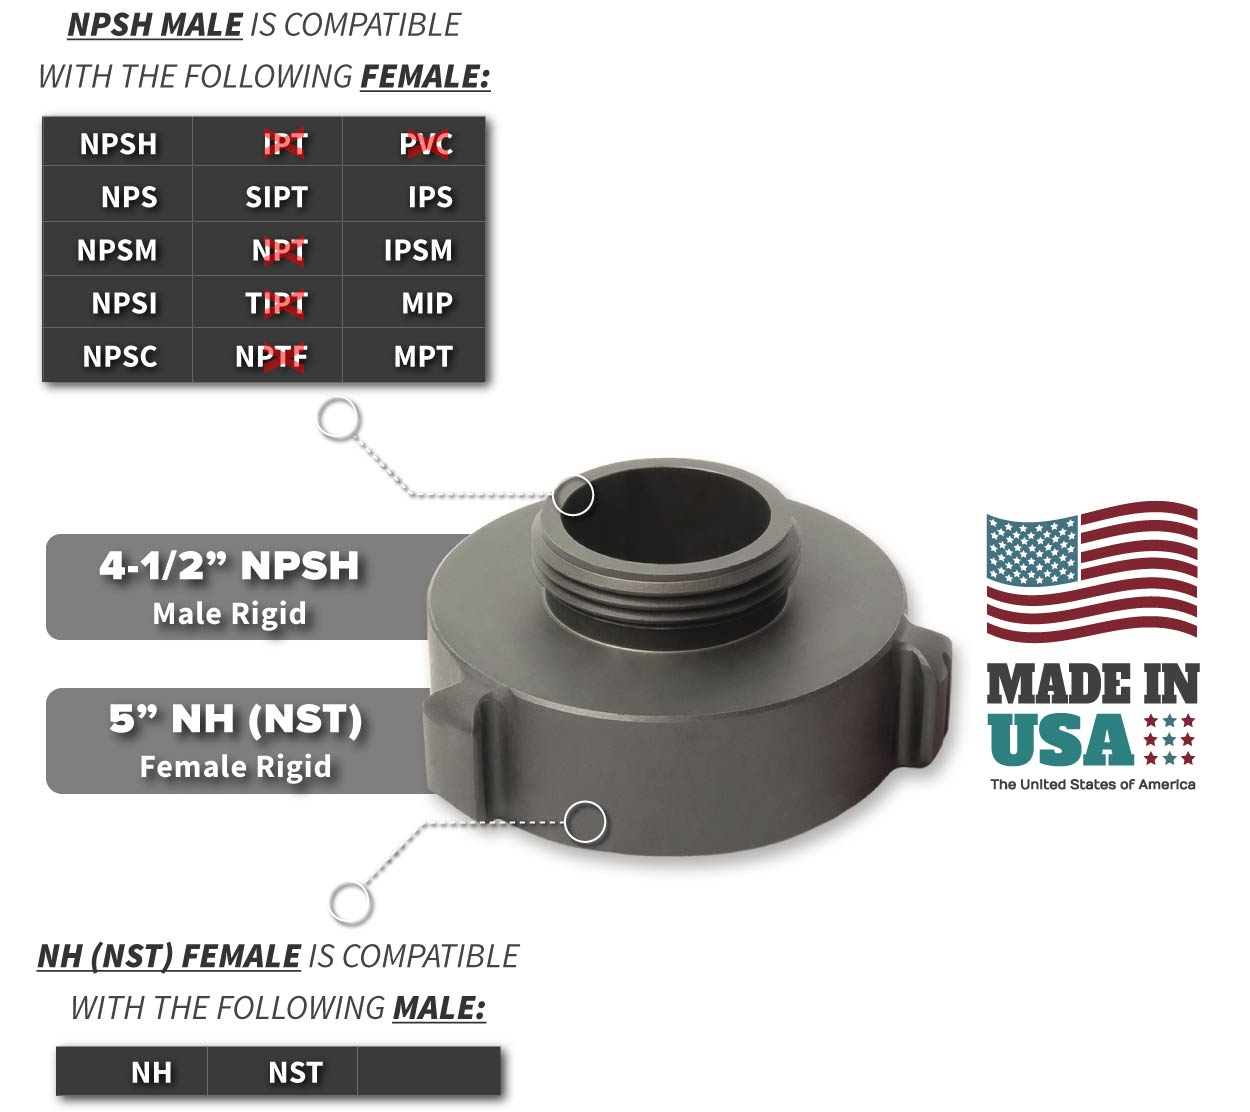 5 Inch NH-NST Female x 4.5 Inch NPSH Male Compatibility Thread Chart